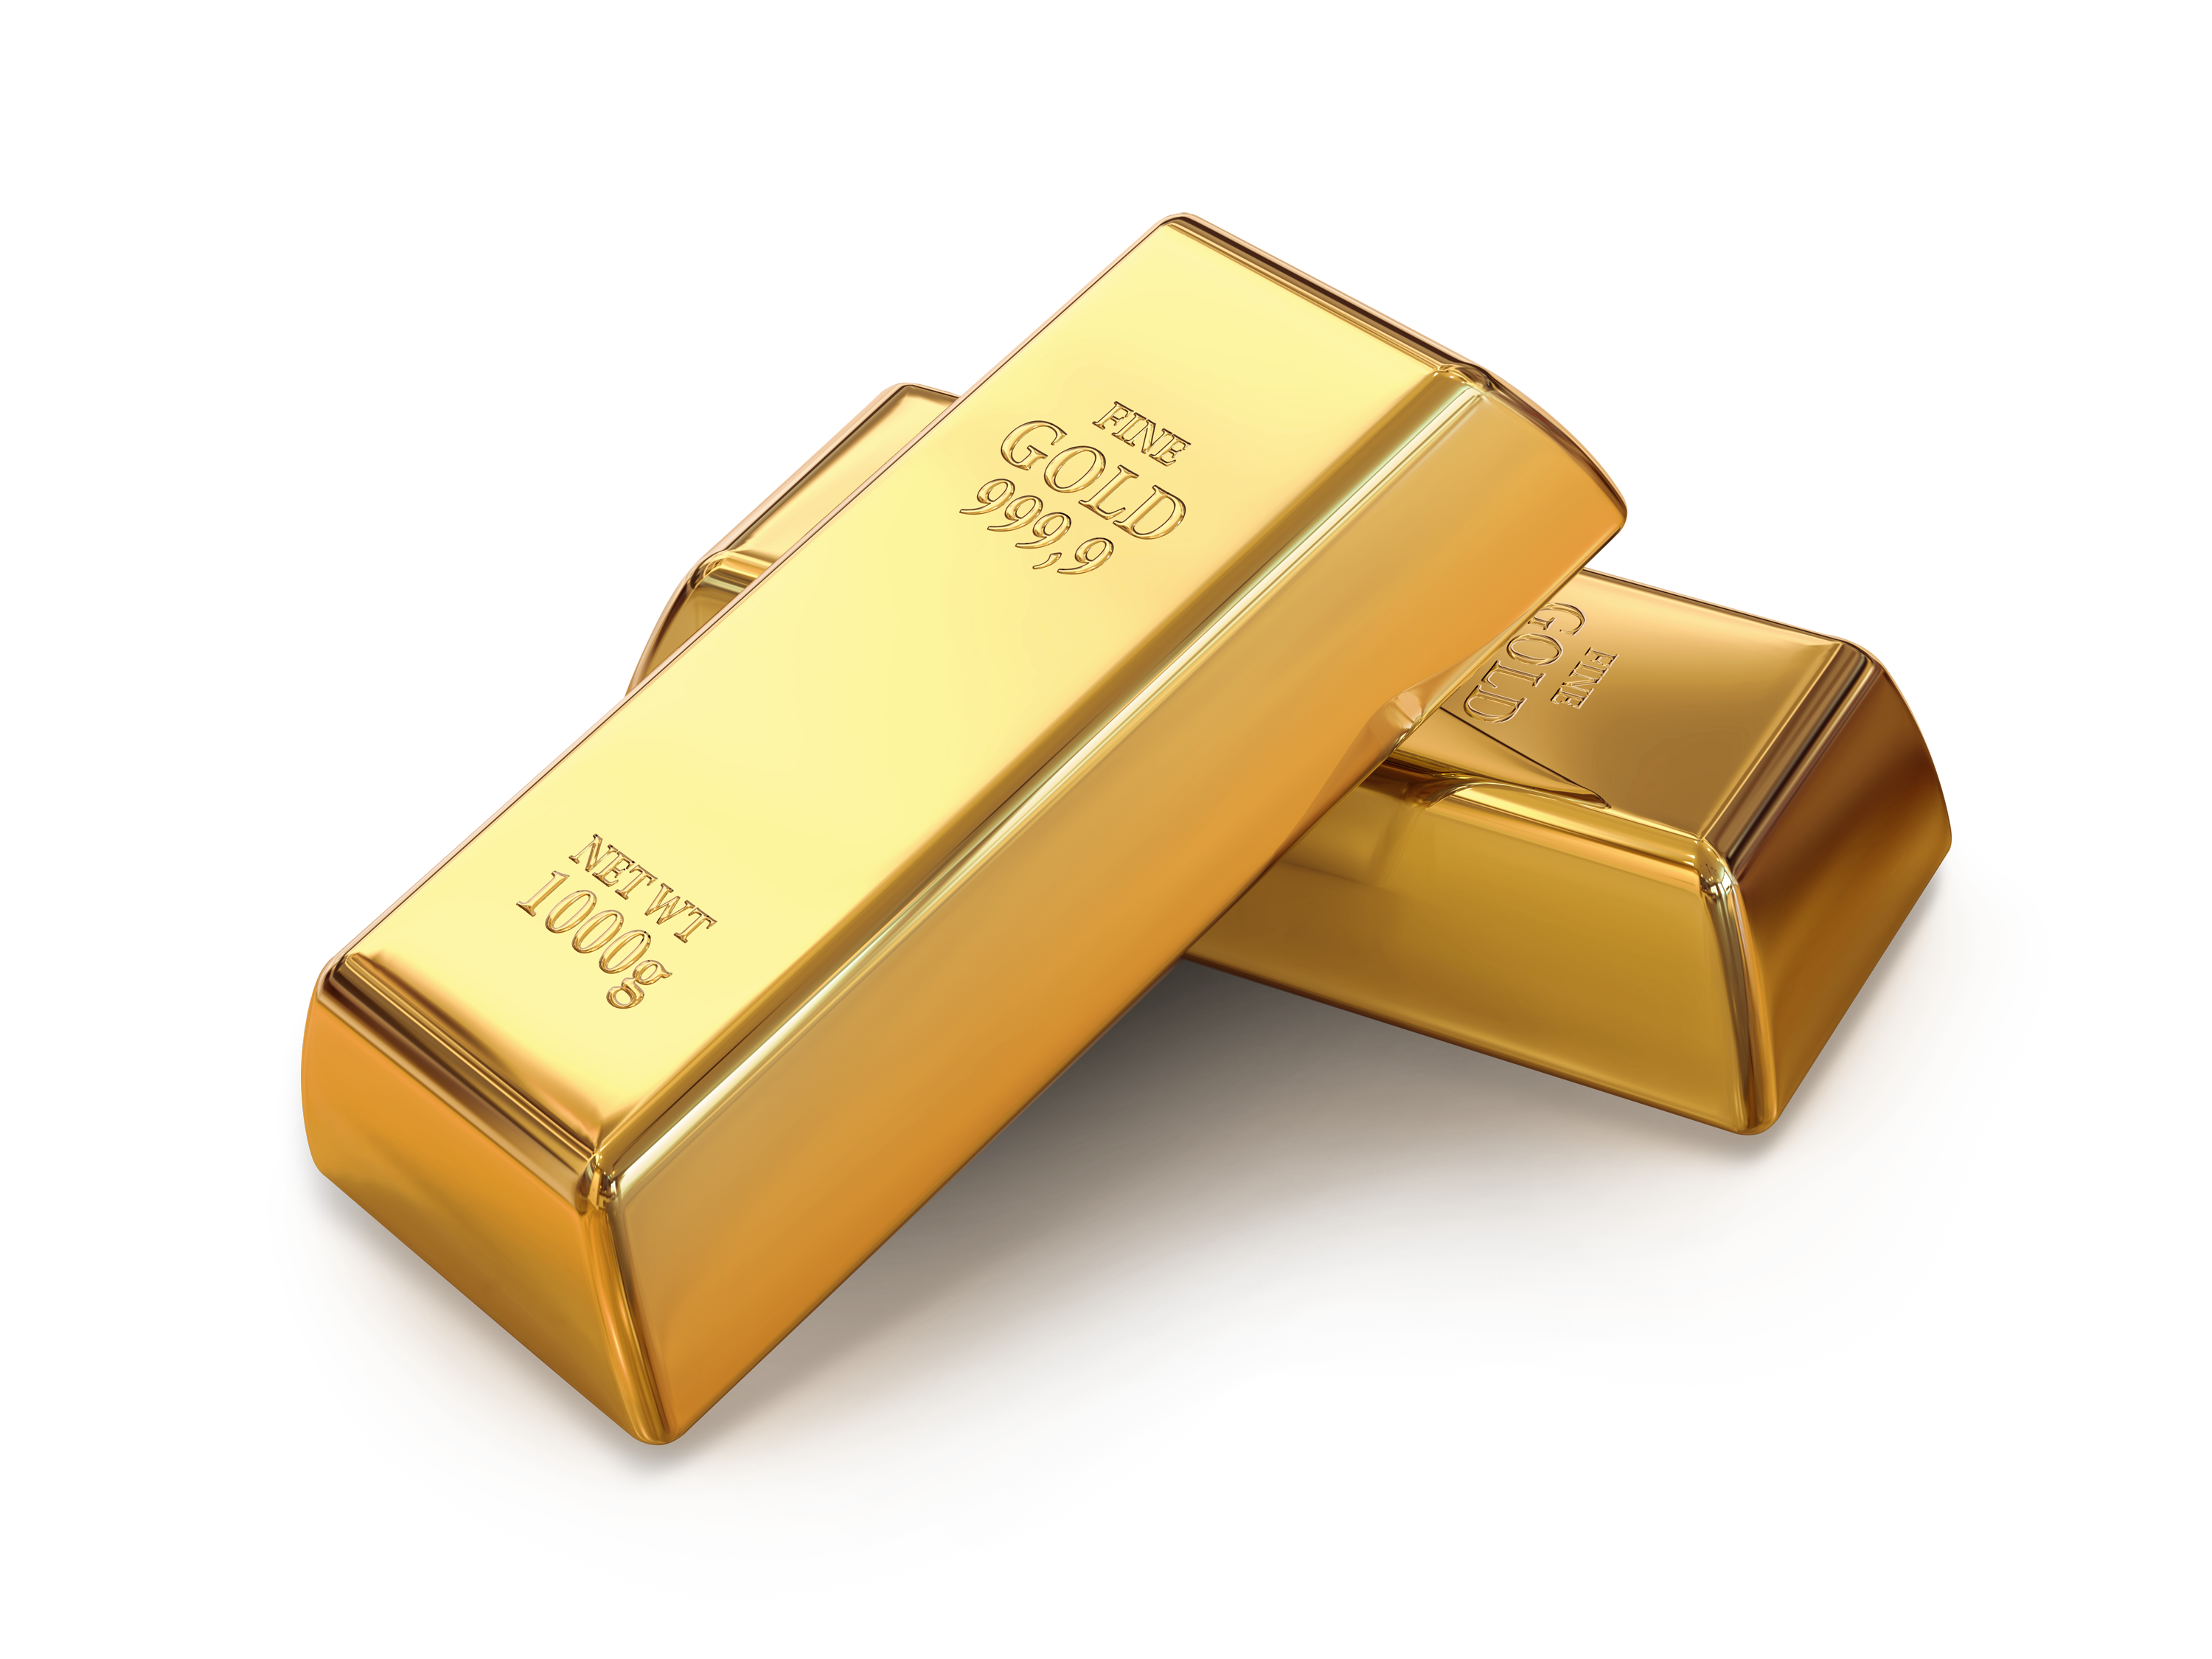 Gold Free Download Png PNG Image - Gold PNG